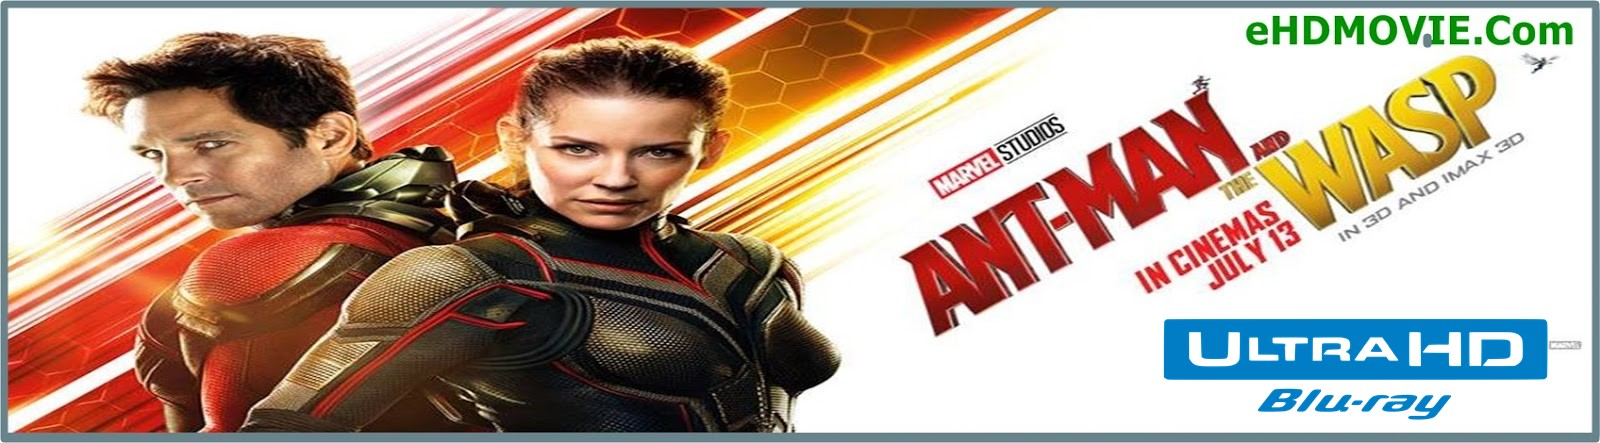 Ant-Man and the Wasp 2018 Full Movie Dual Audio [Hindi – English] 1080p - 720p - 480p ORG BRRip 350MB - 1.1GB - 2.2GB ESubs Free Download